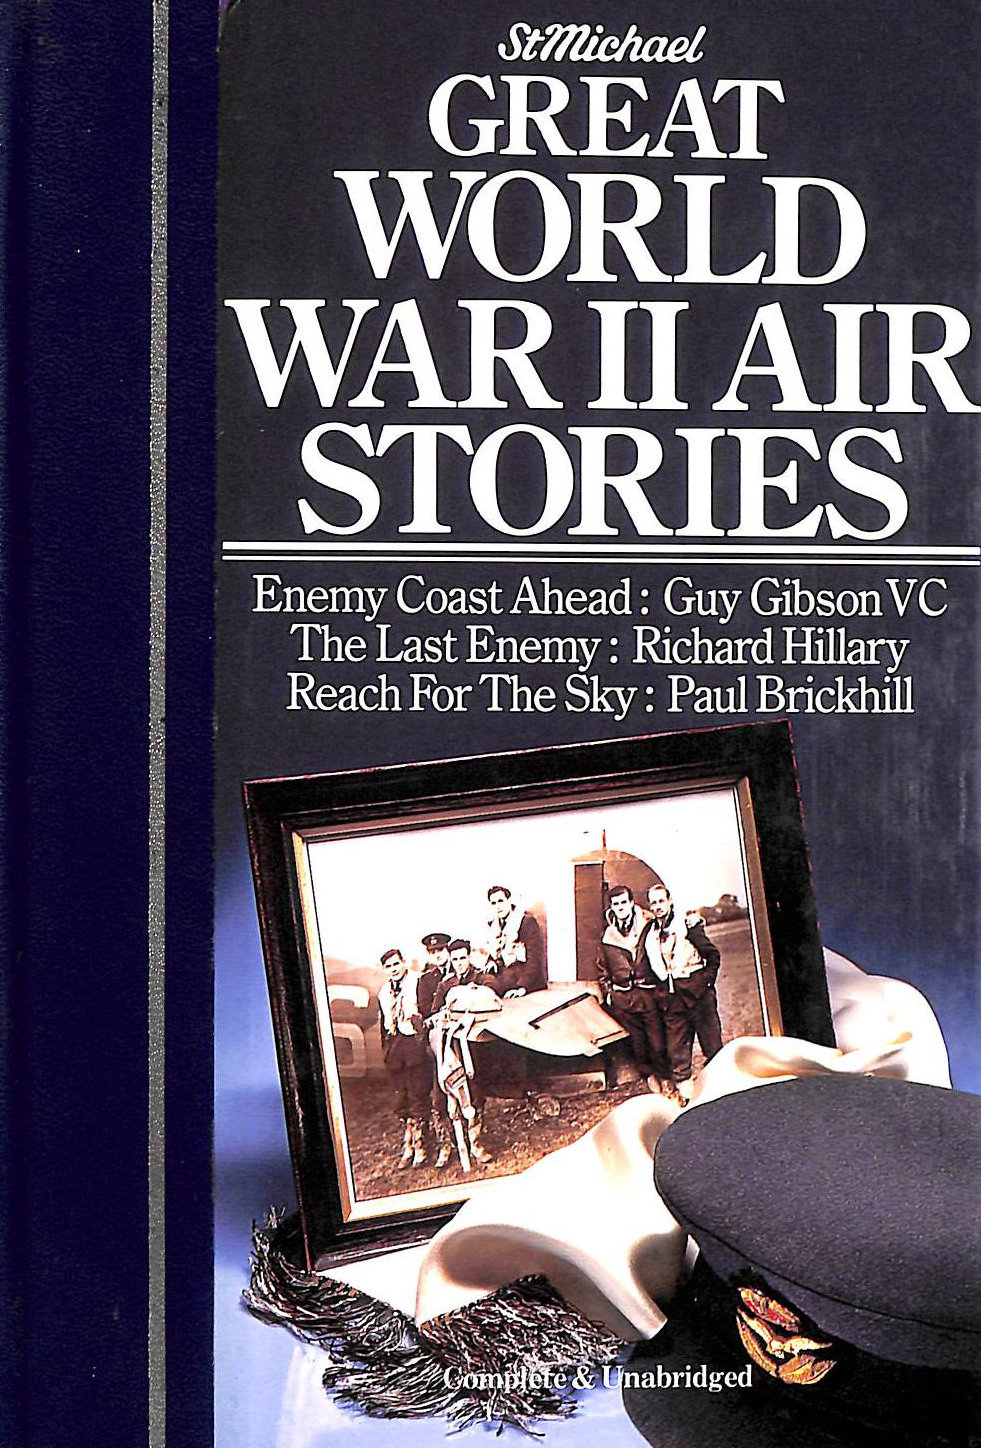 Image for Great World War Ii Air Stories, Enemy Coast Ahead, The Last Enemy, Reach For The Sky